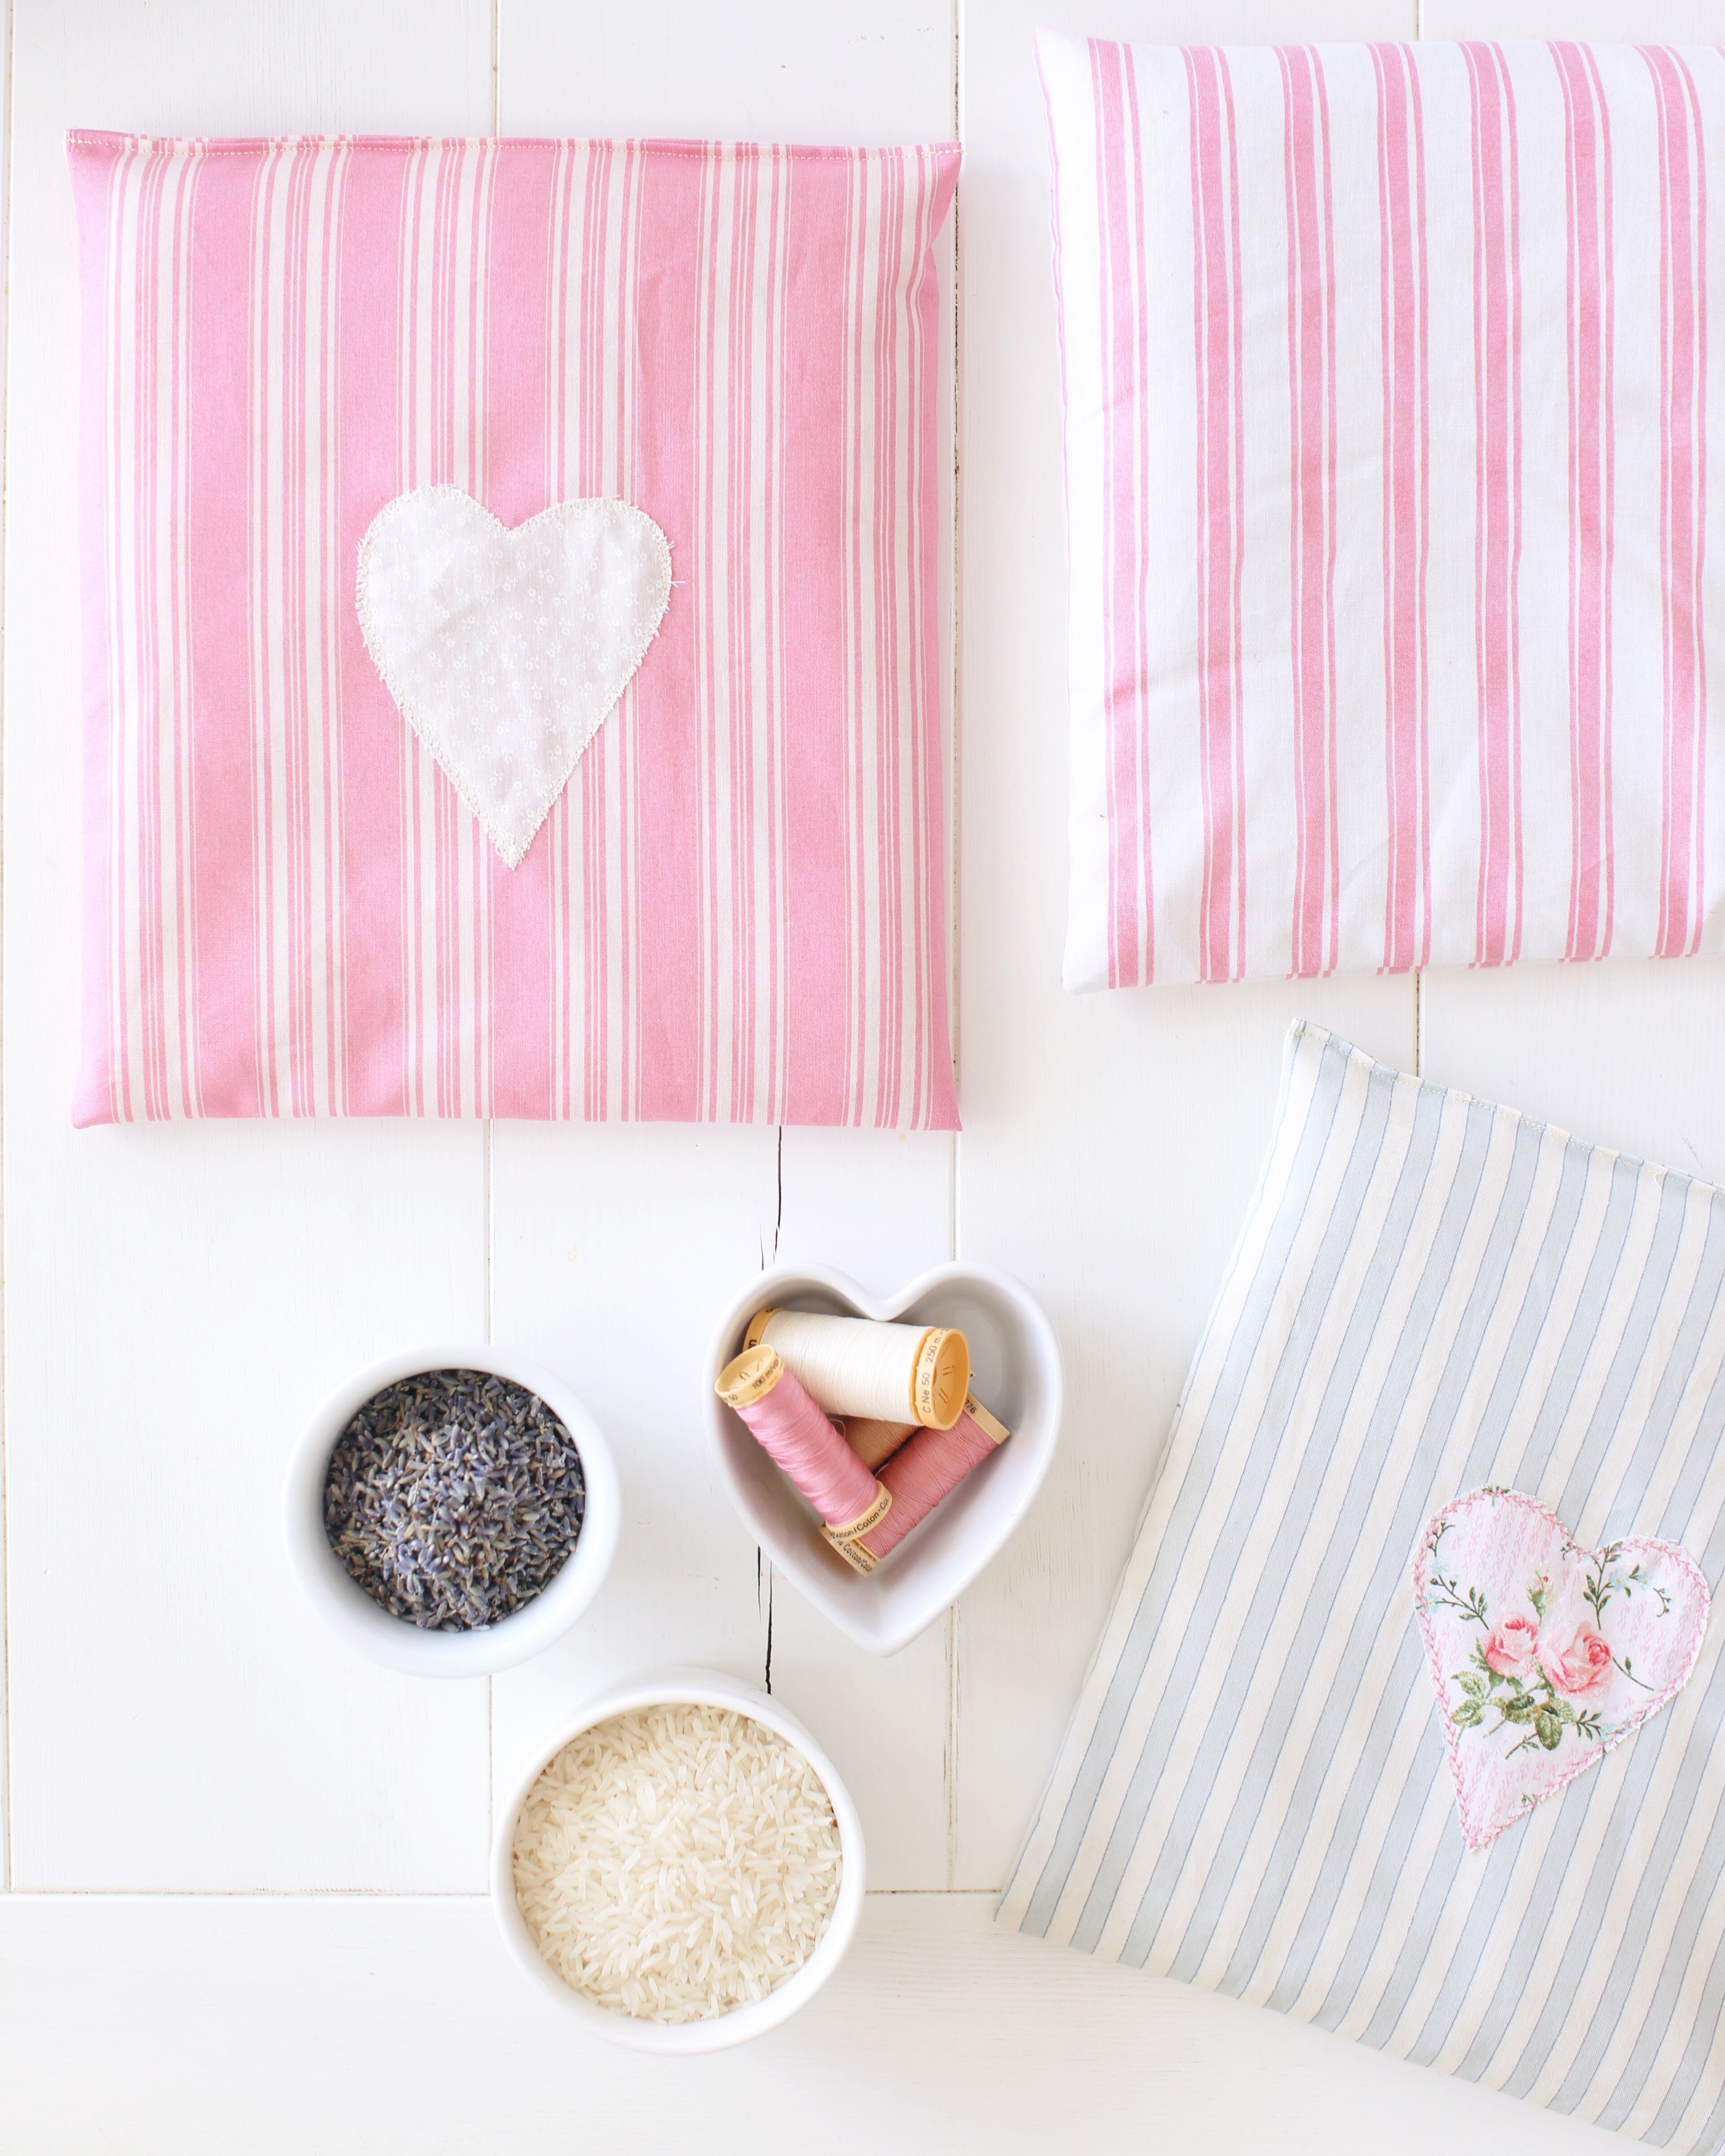 Sweetheart Lavender Magic Bags perfect for Valentine's Day or a simple craft for any time of the year!